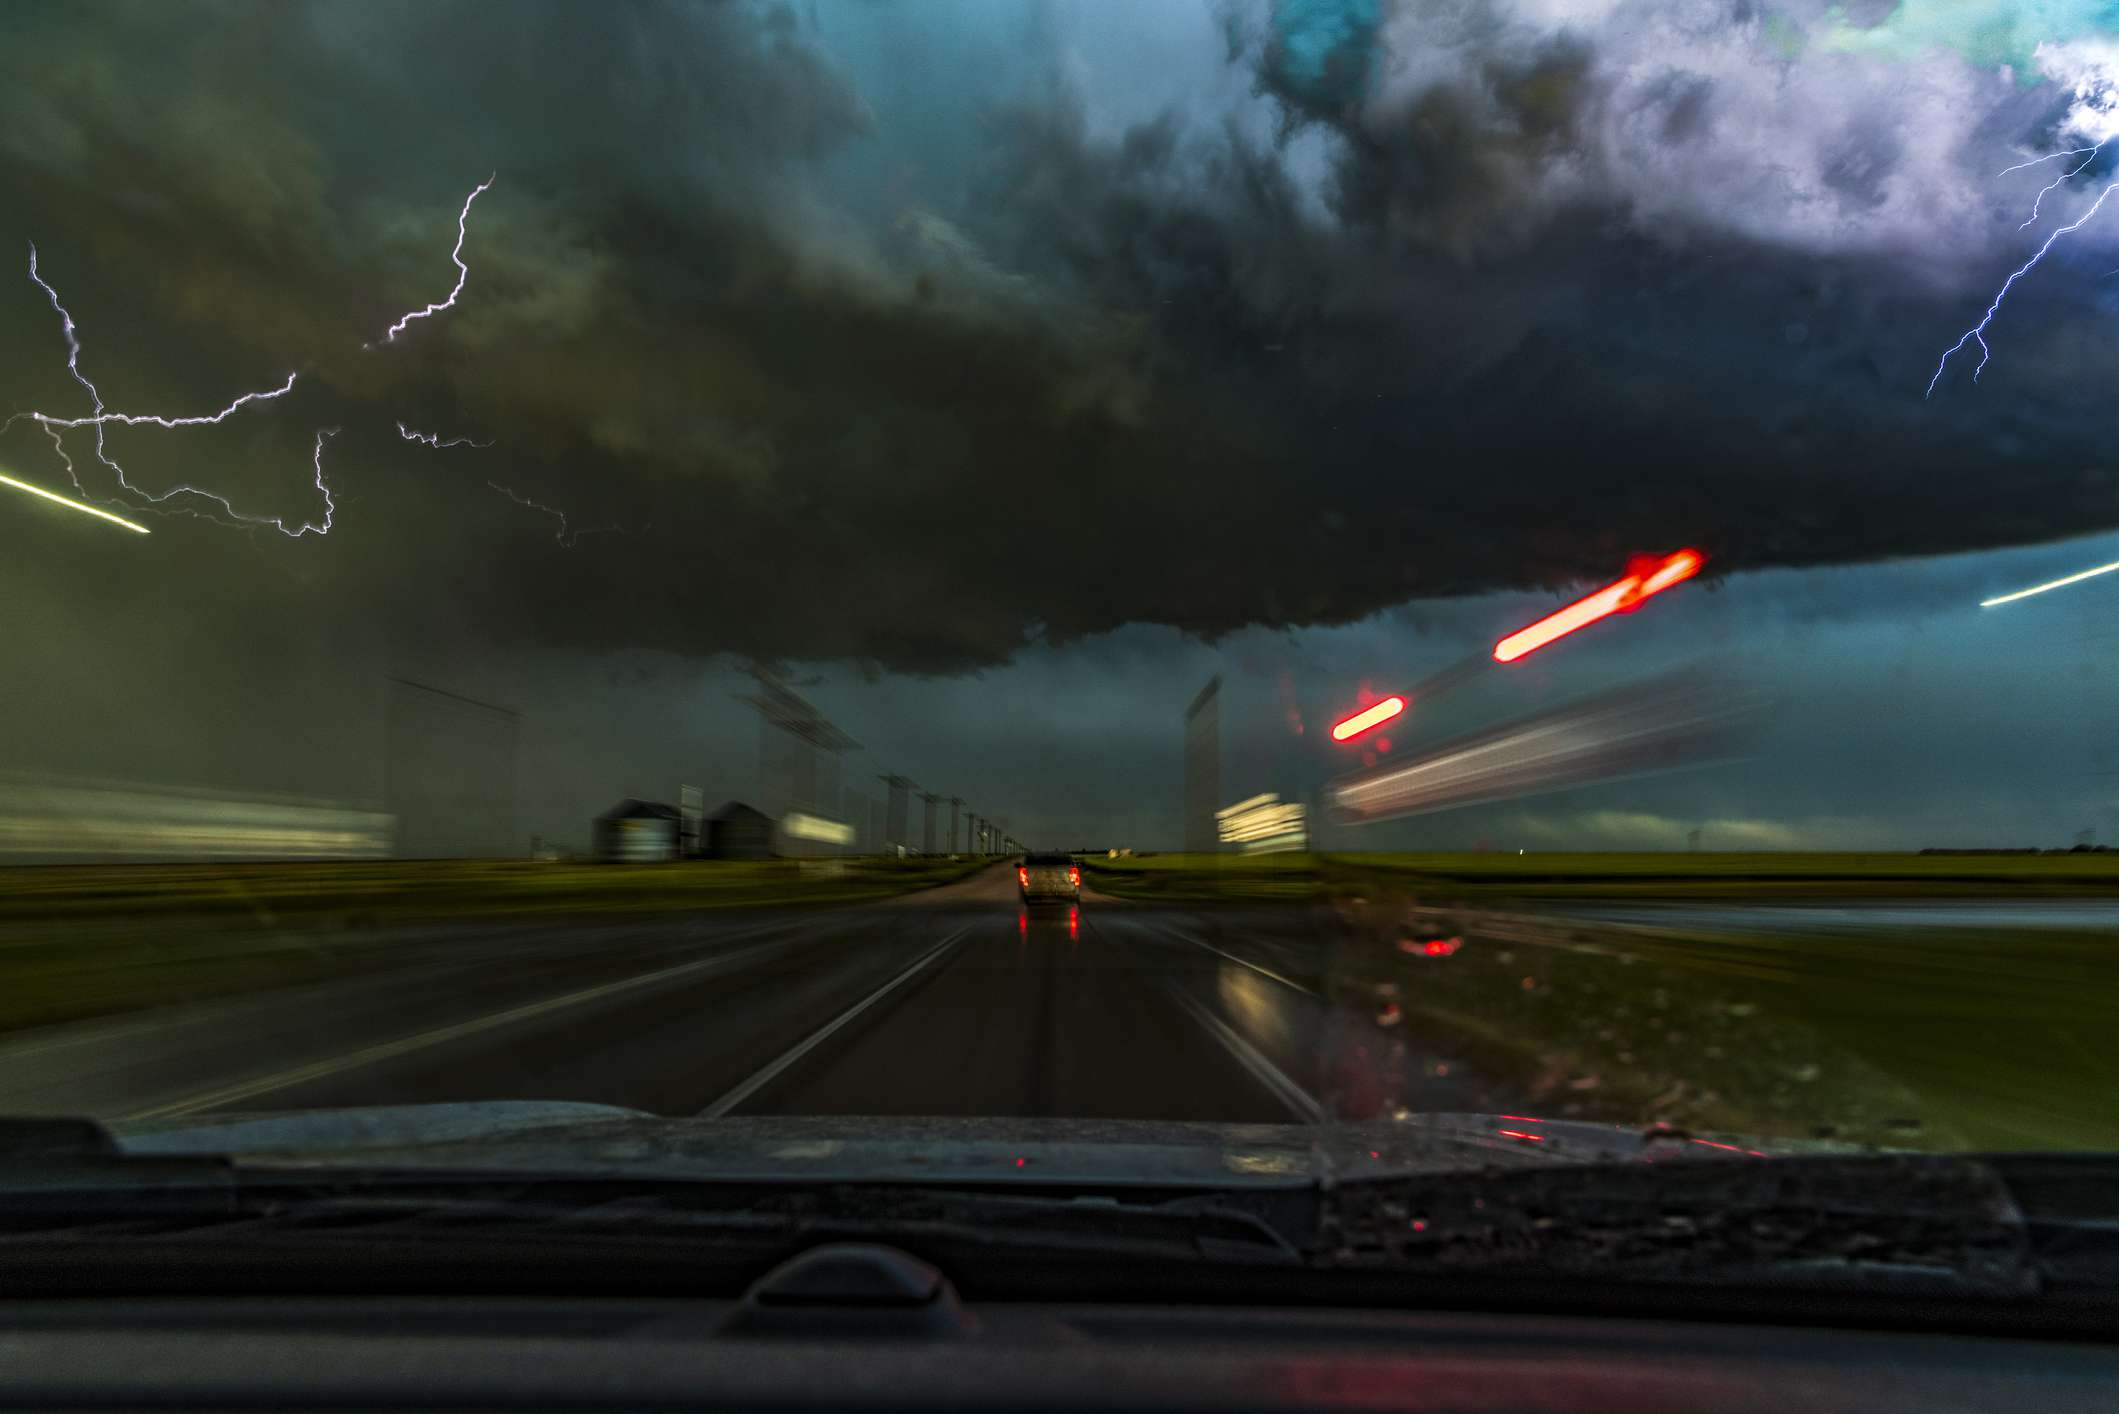 Storm and lightning from a dashcam point of view in Colorado, USA